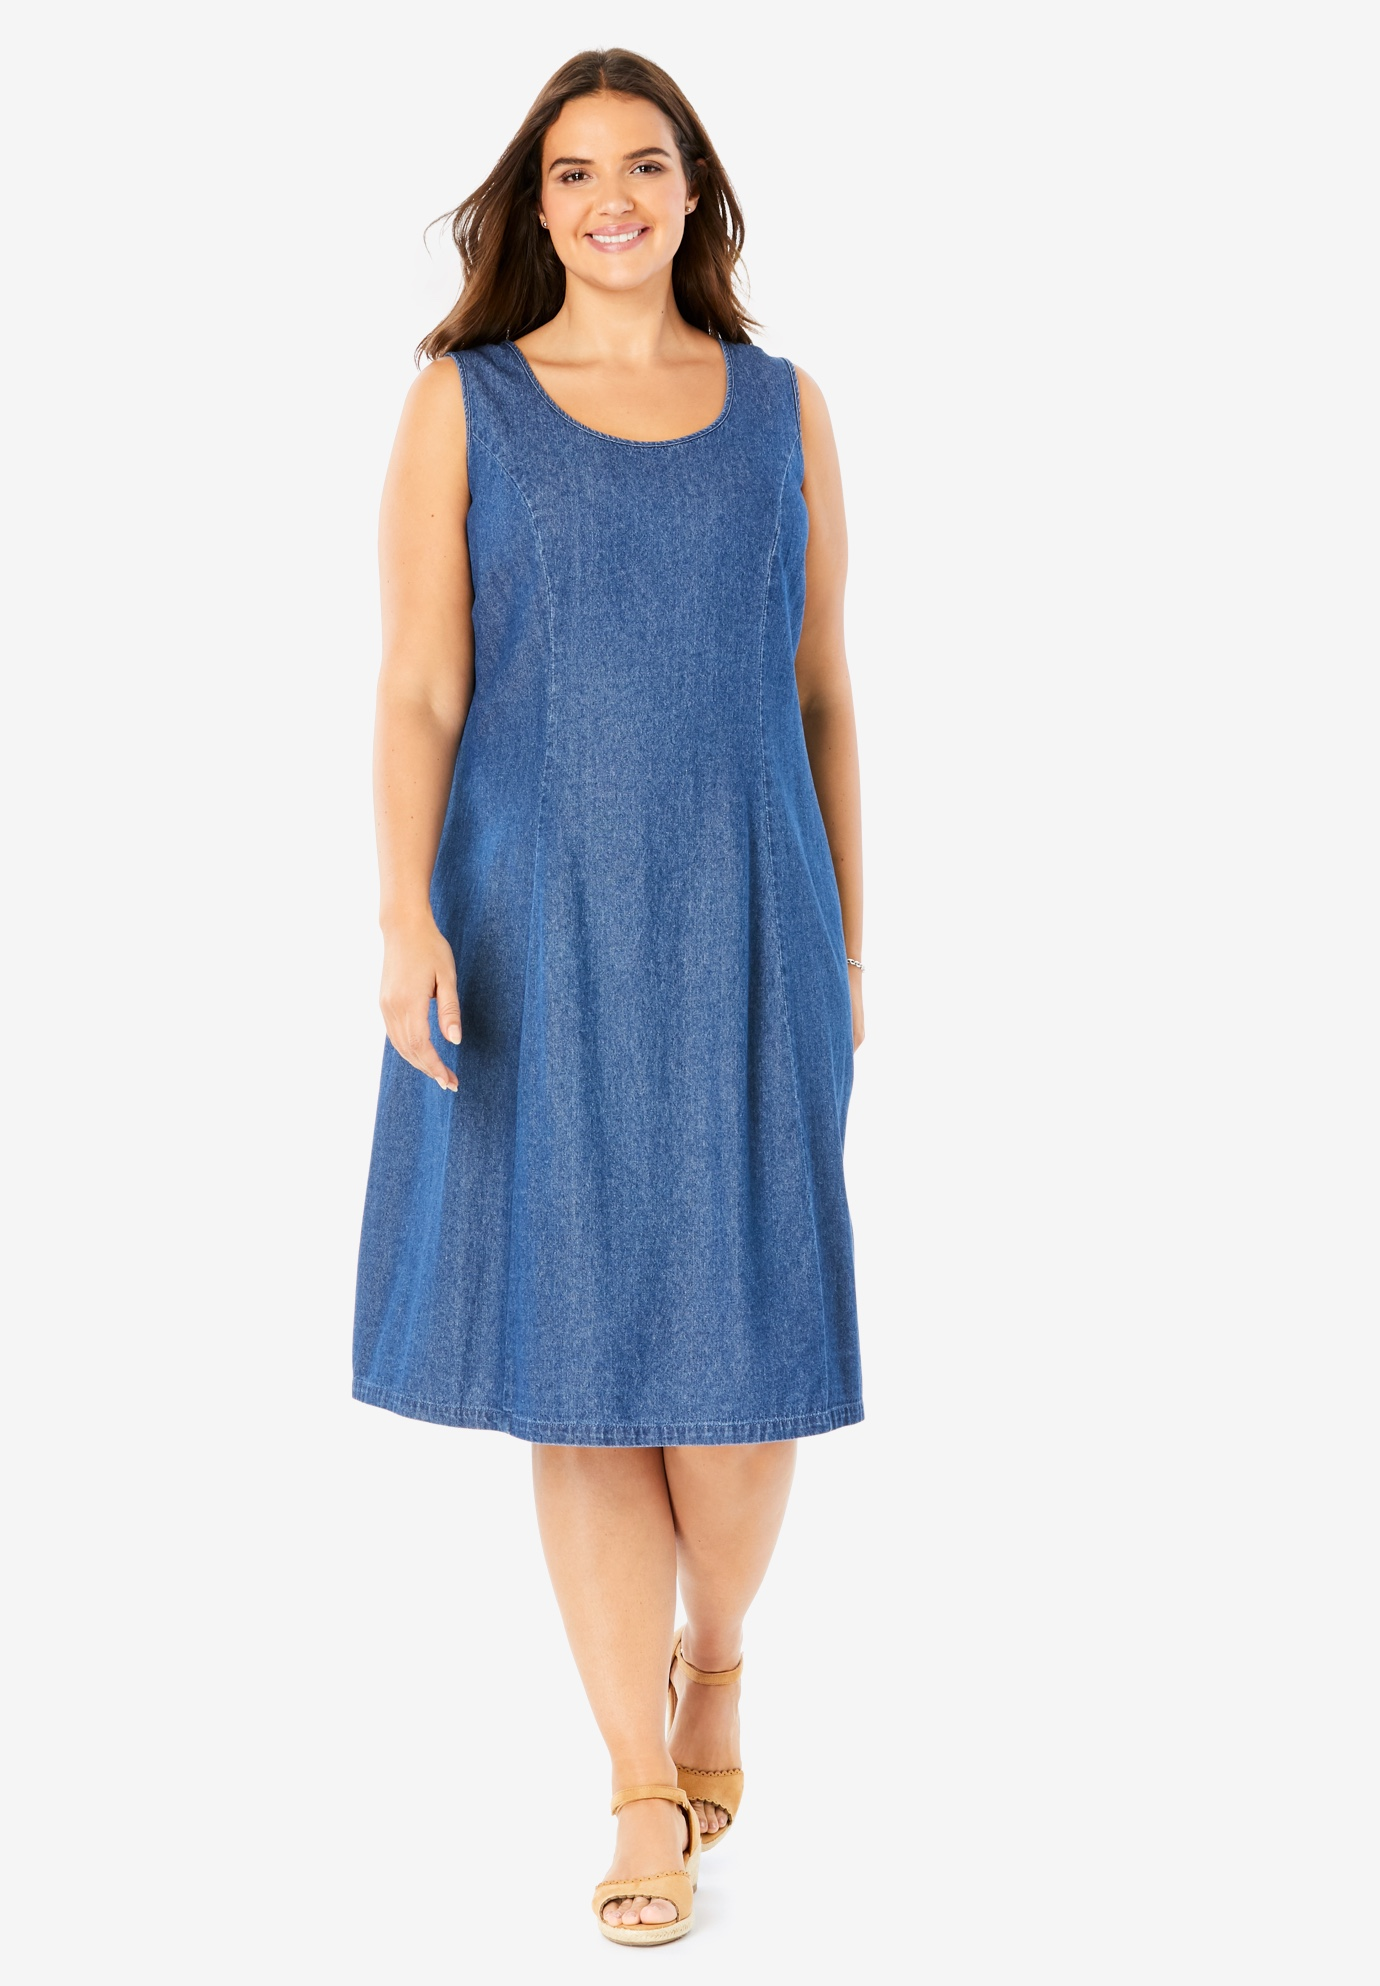 Sleeveless Denim Dress,